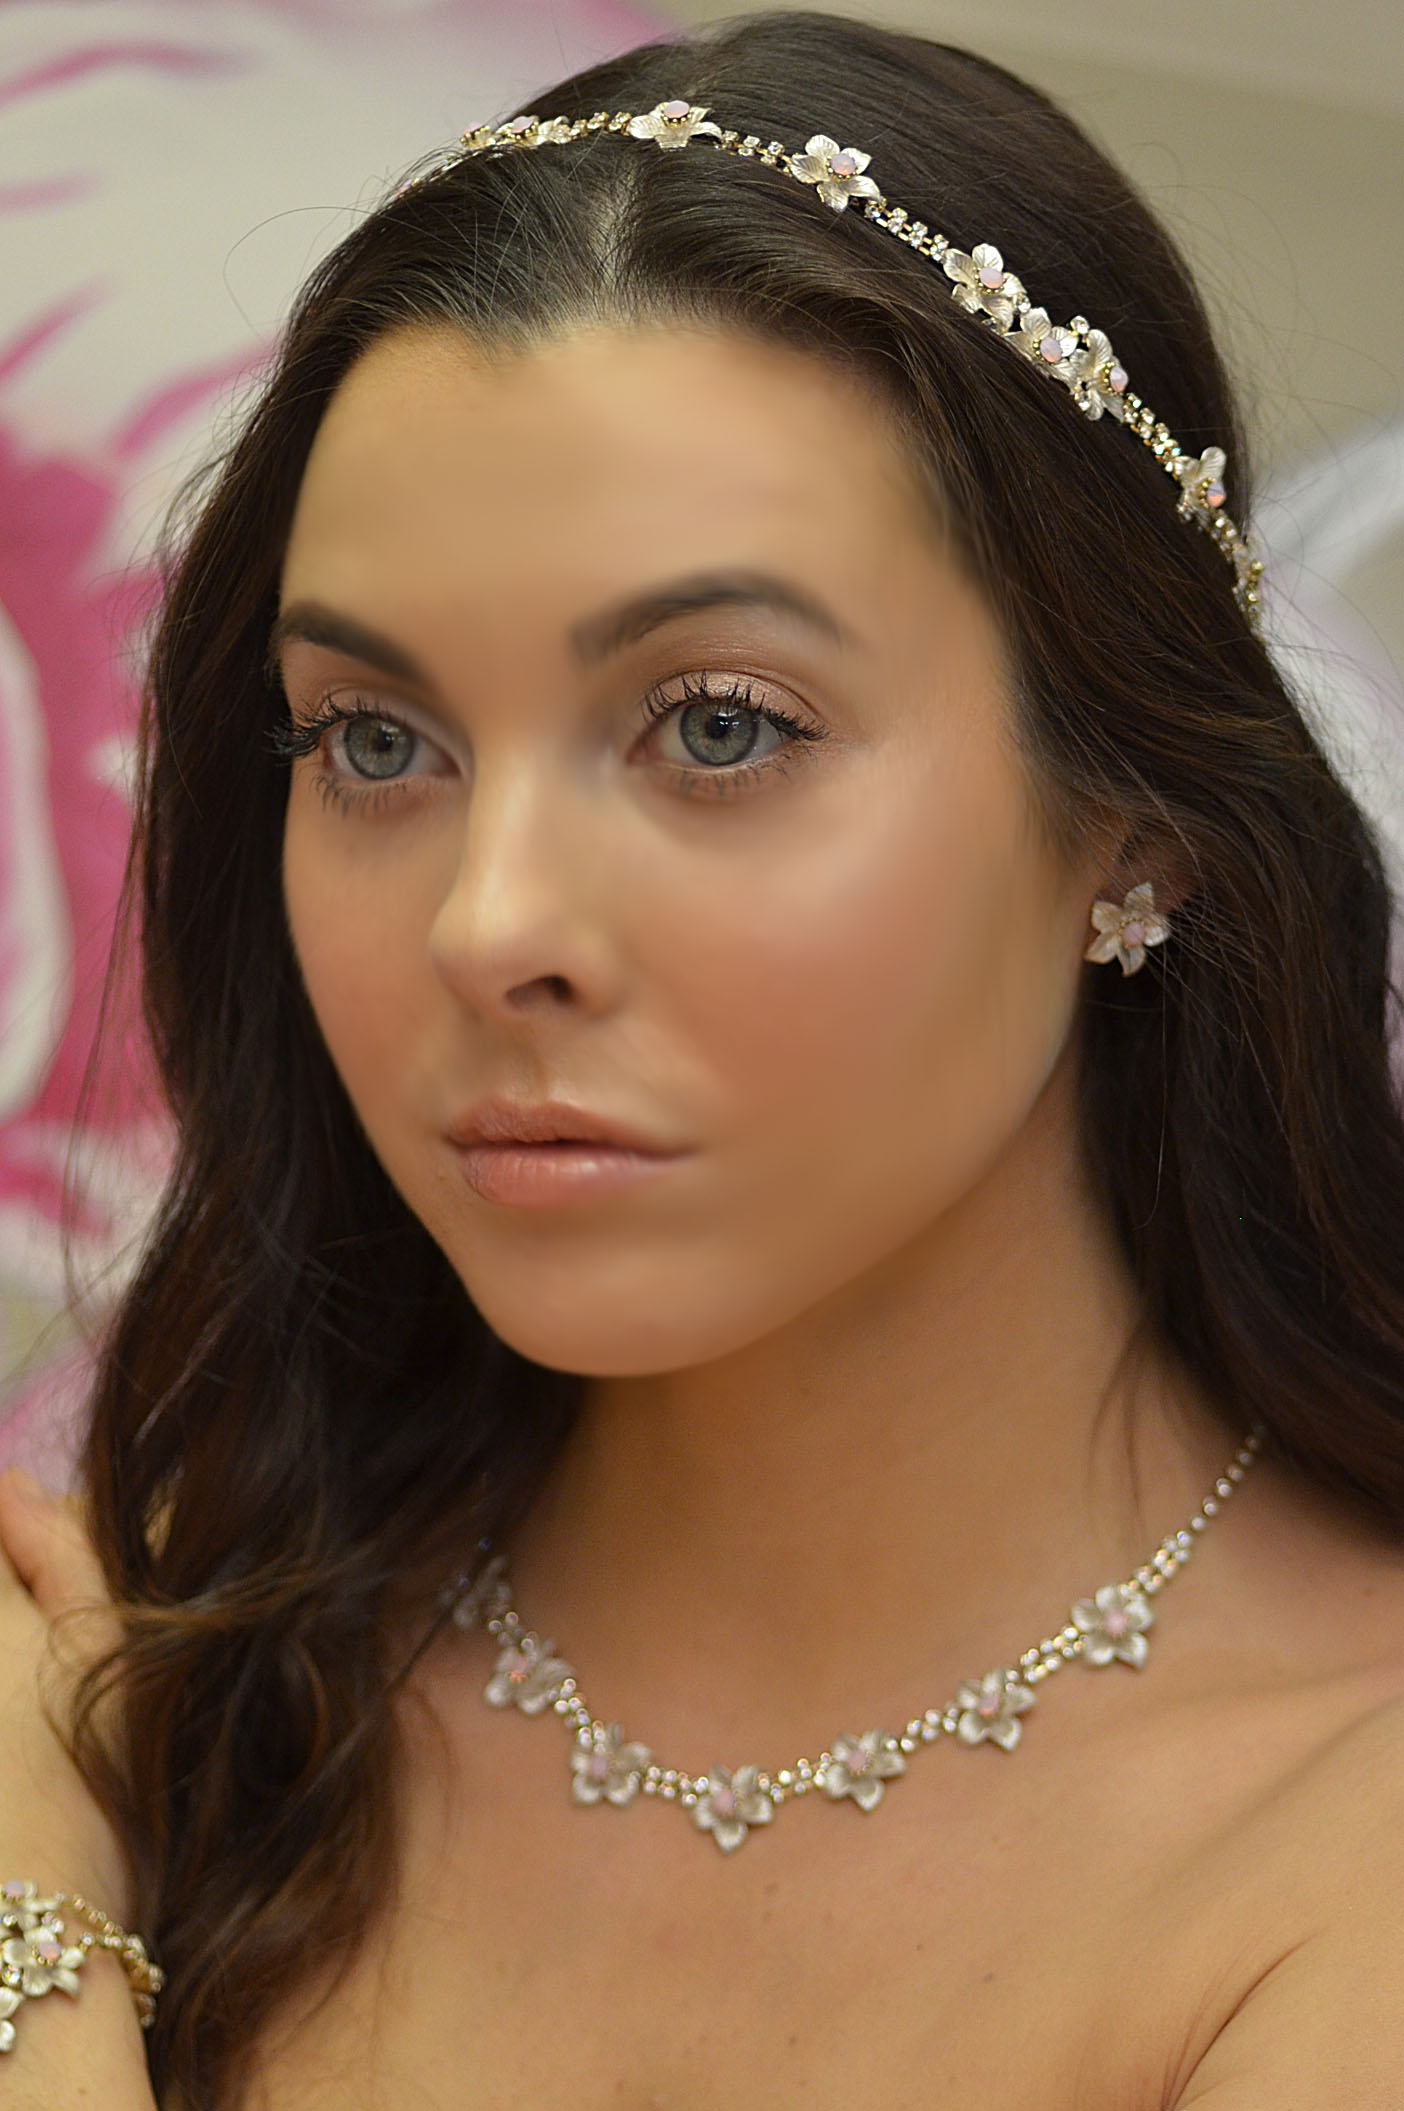 8651EN Flower and Opal neacklace and earring set.